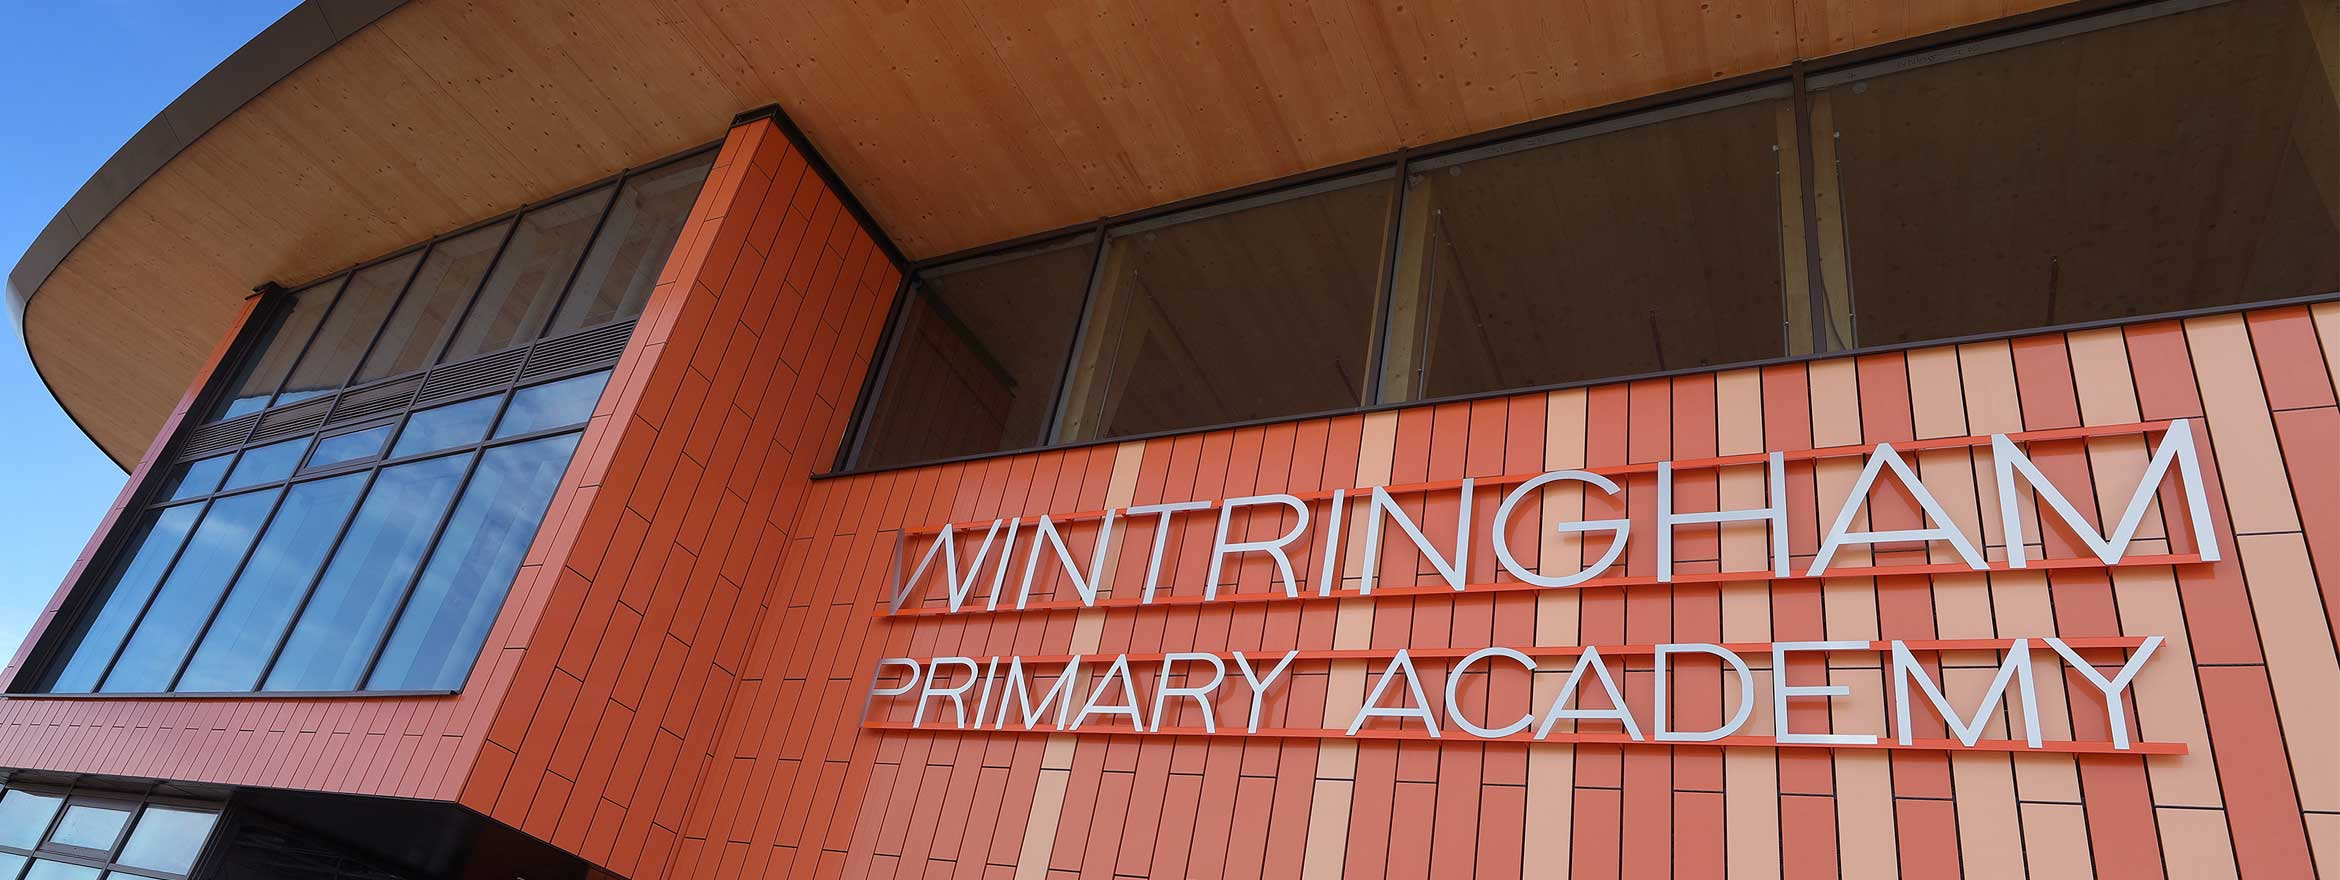 Working at Wintringham